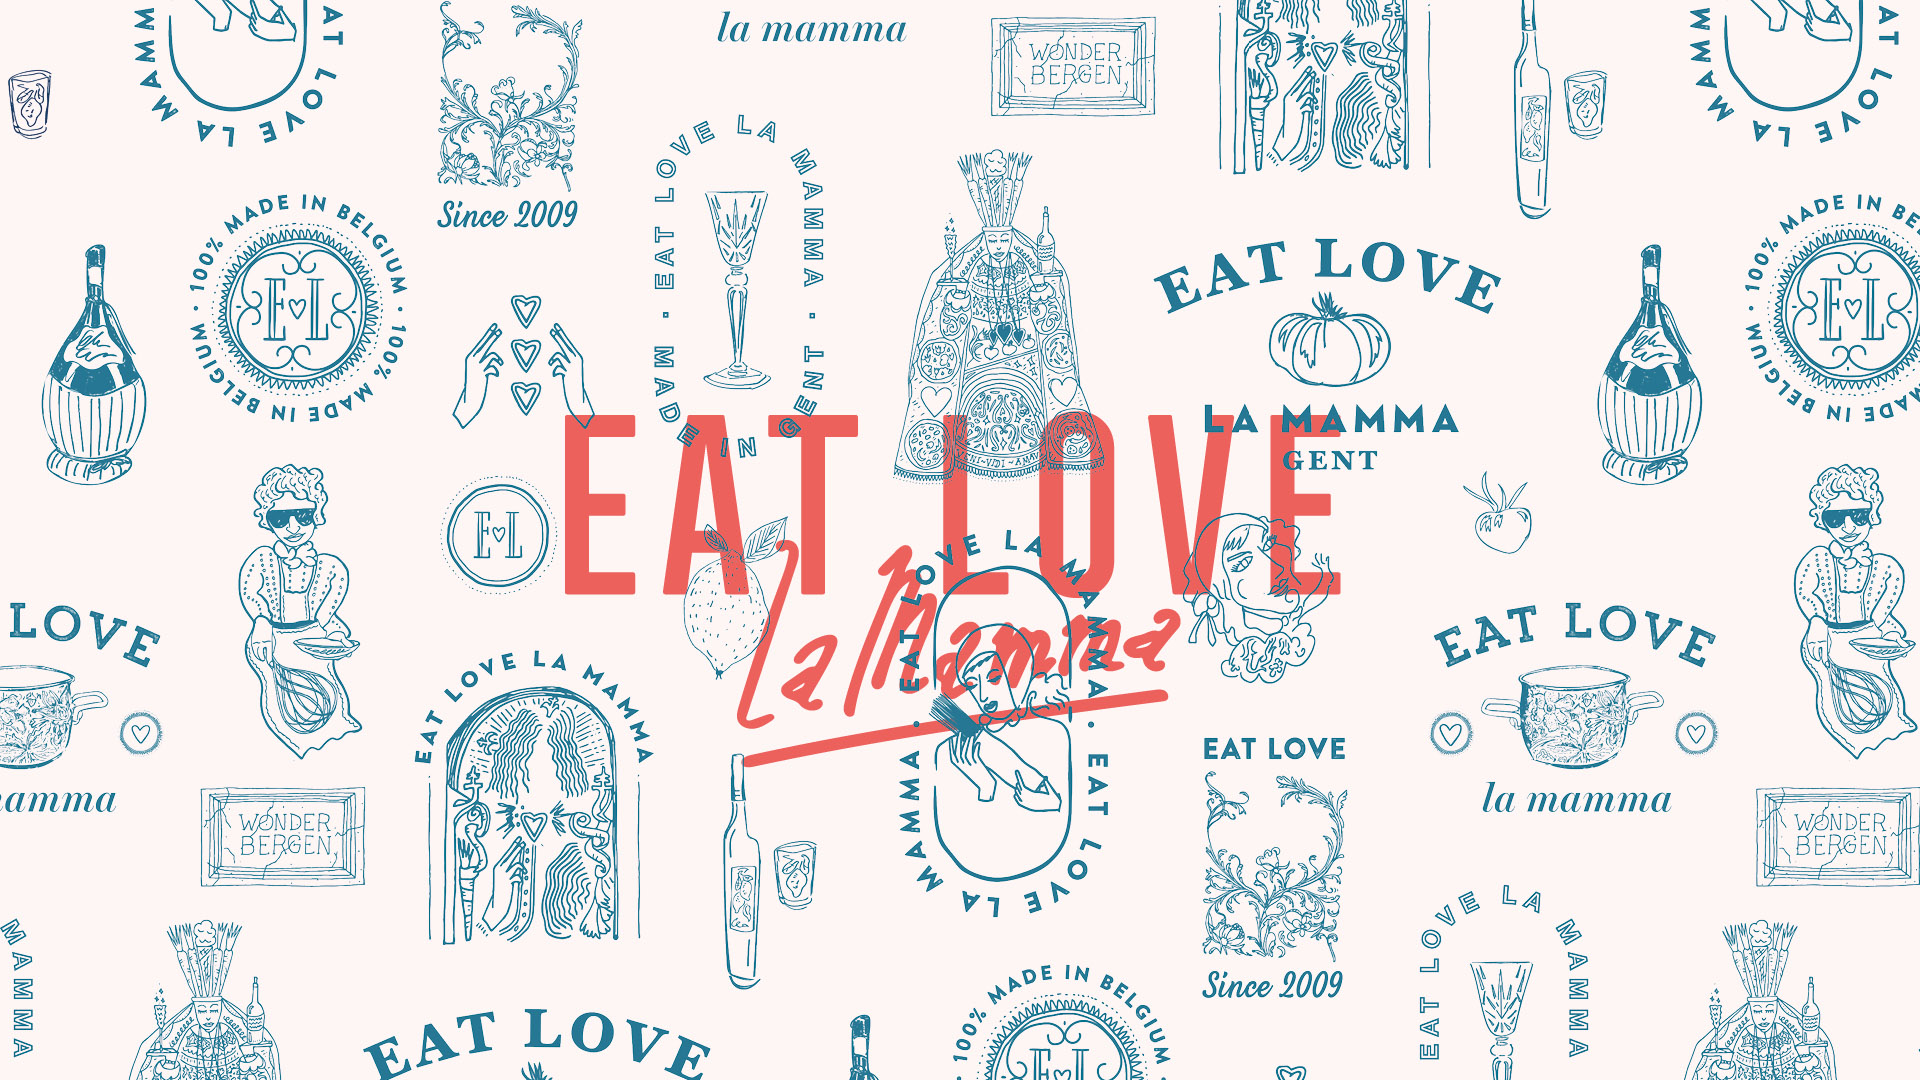 Eat Love La Mamma Patroon